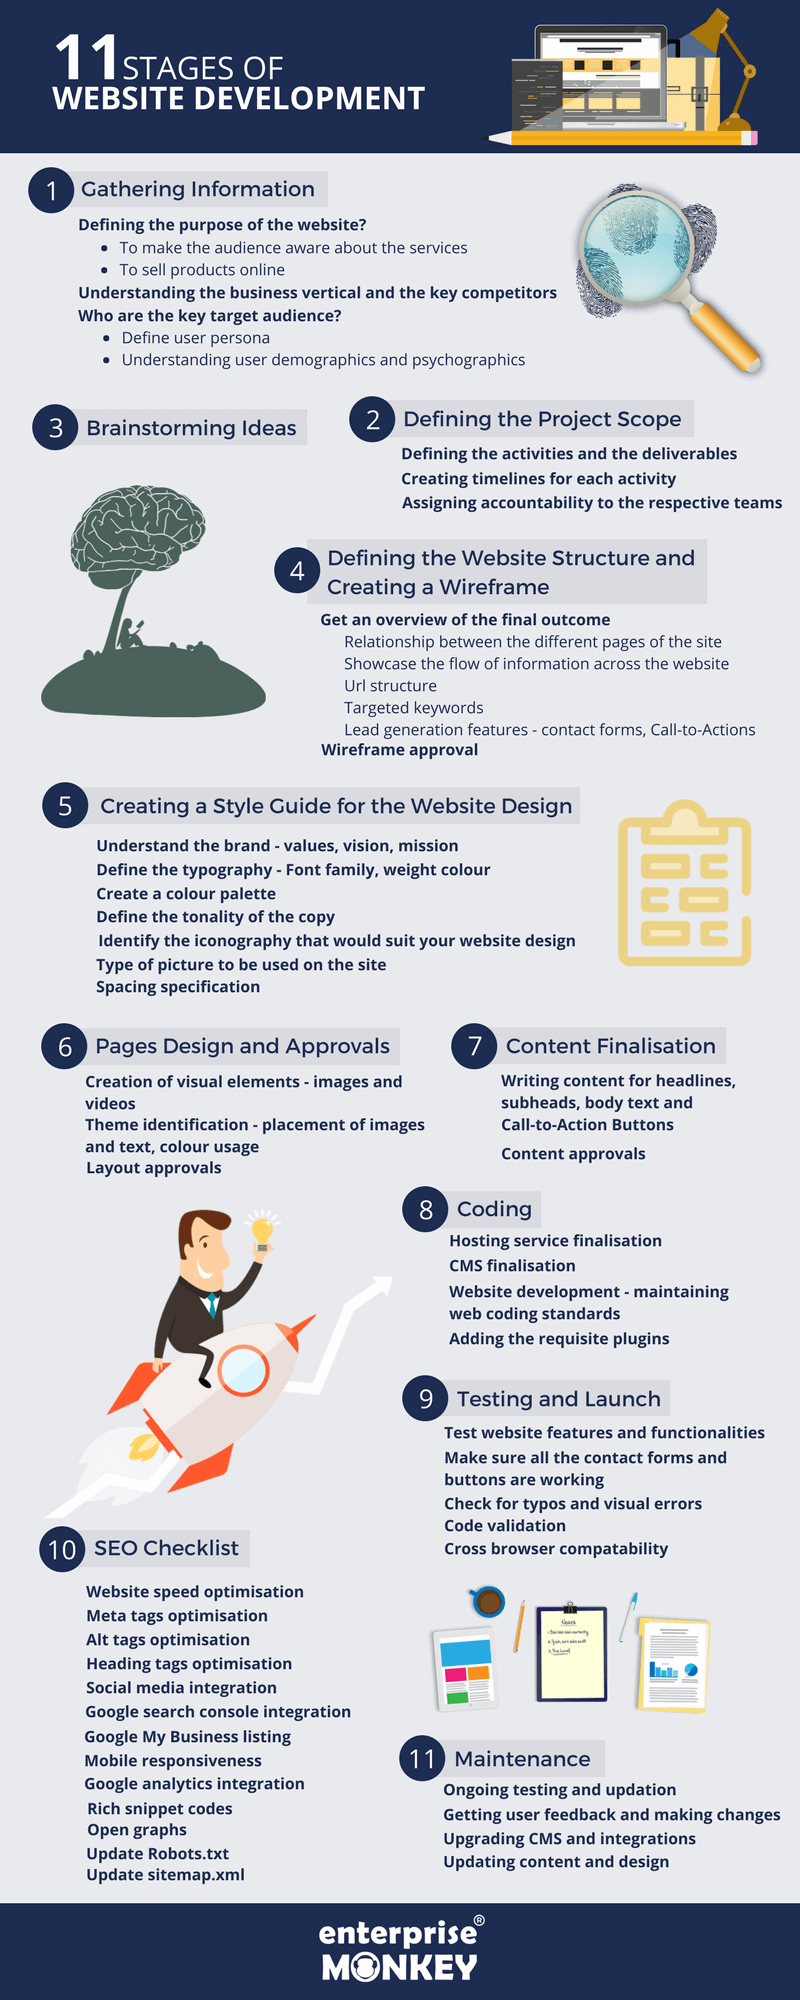 11 Stages of Website Development [Infographic]